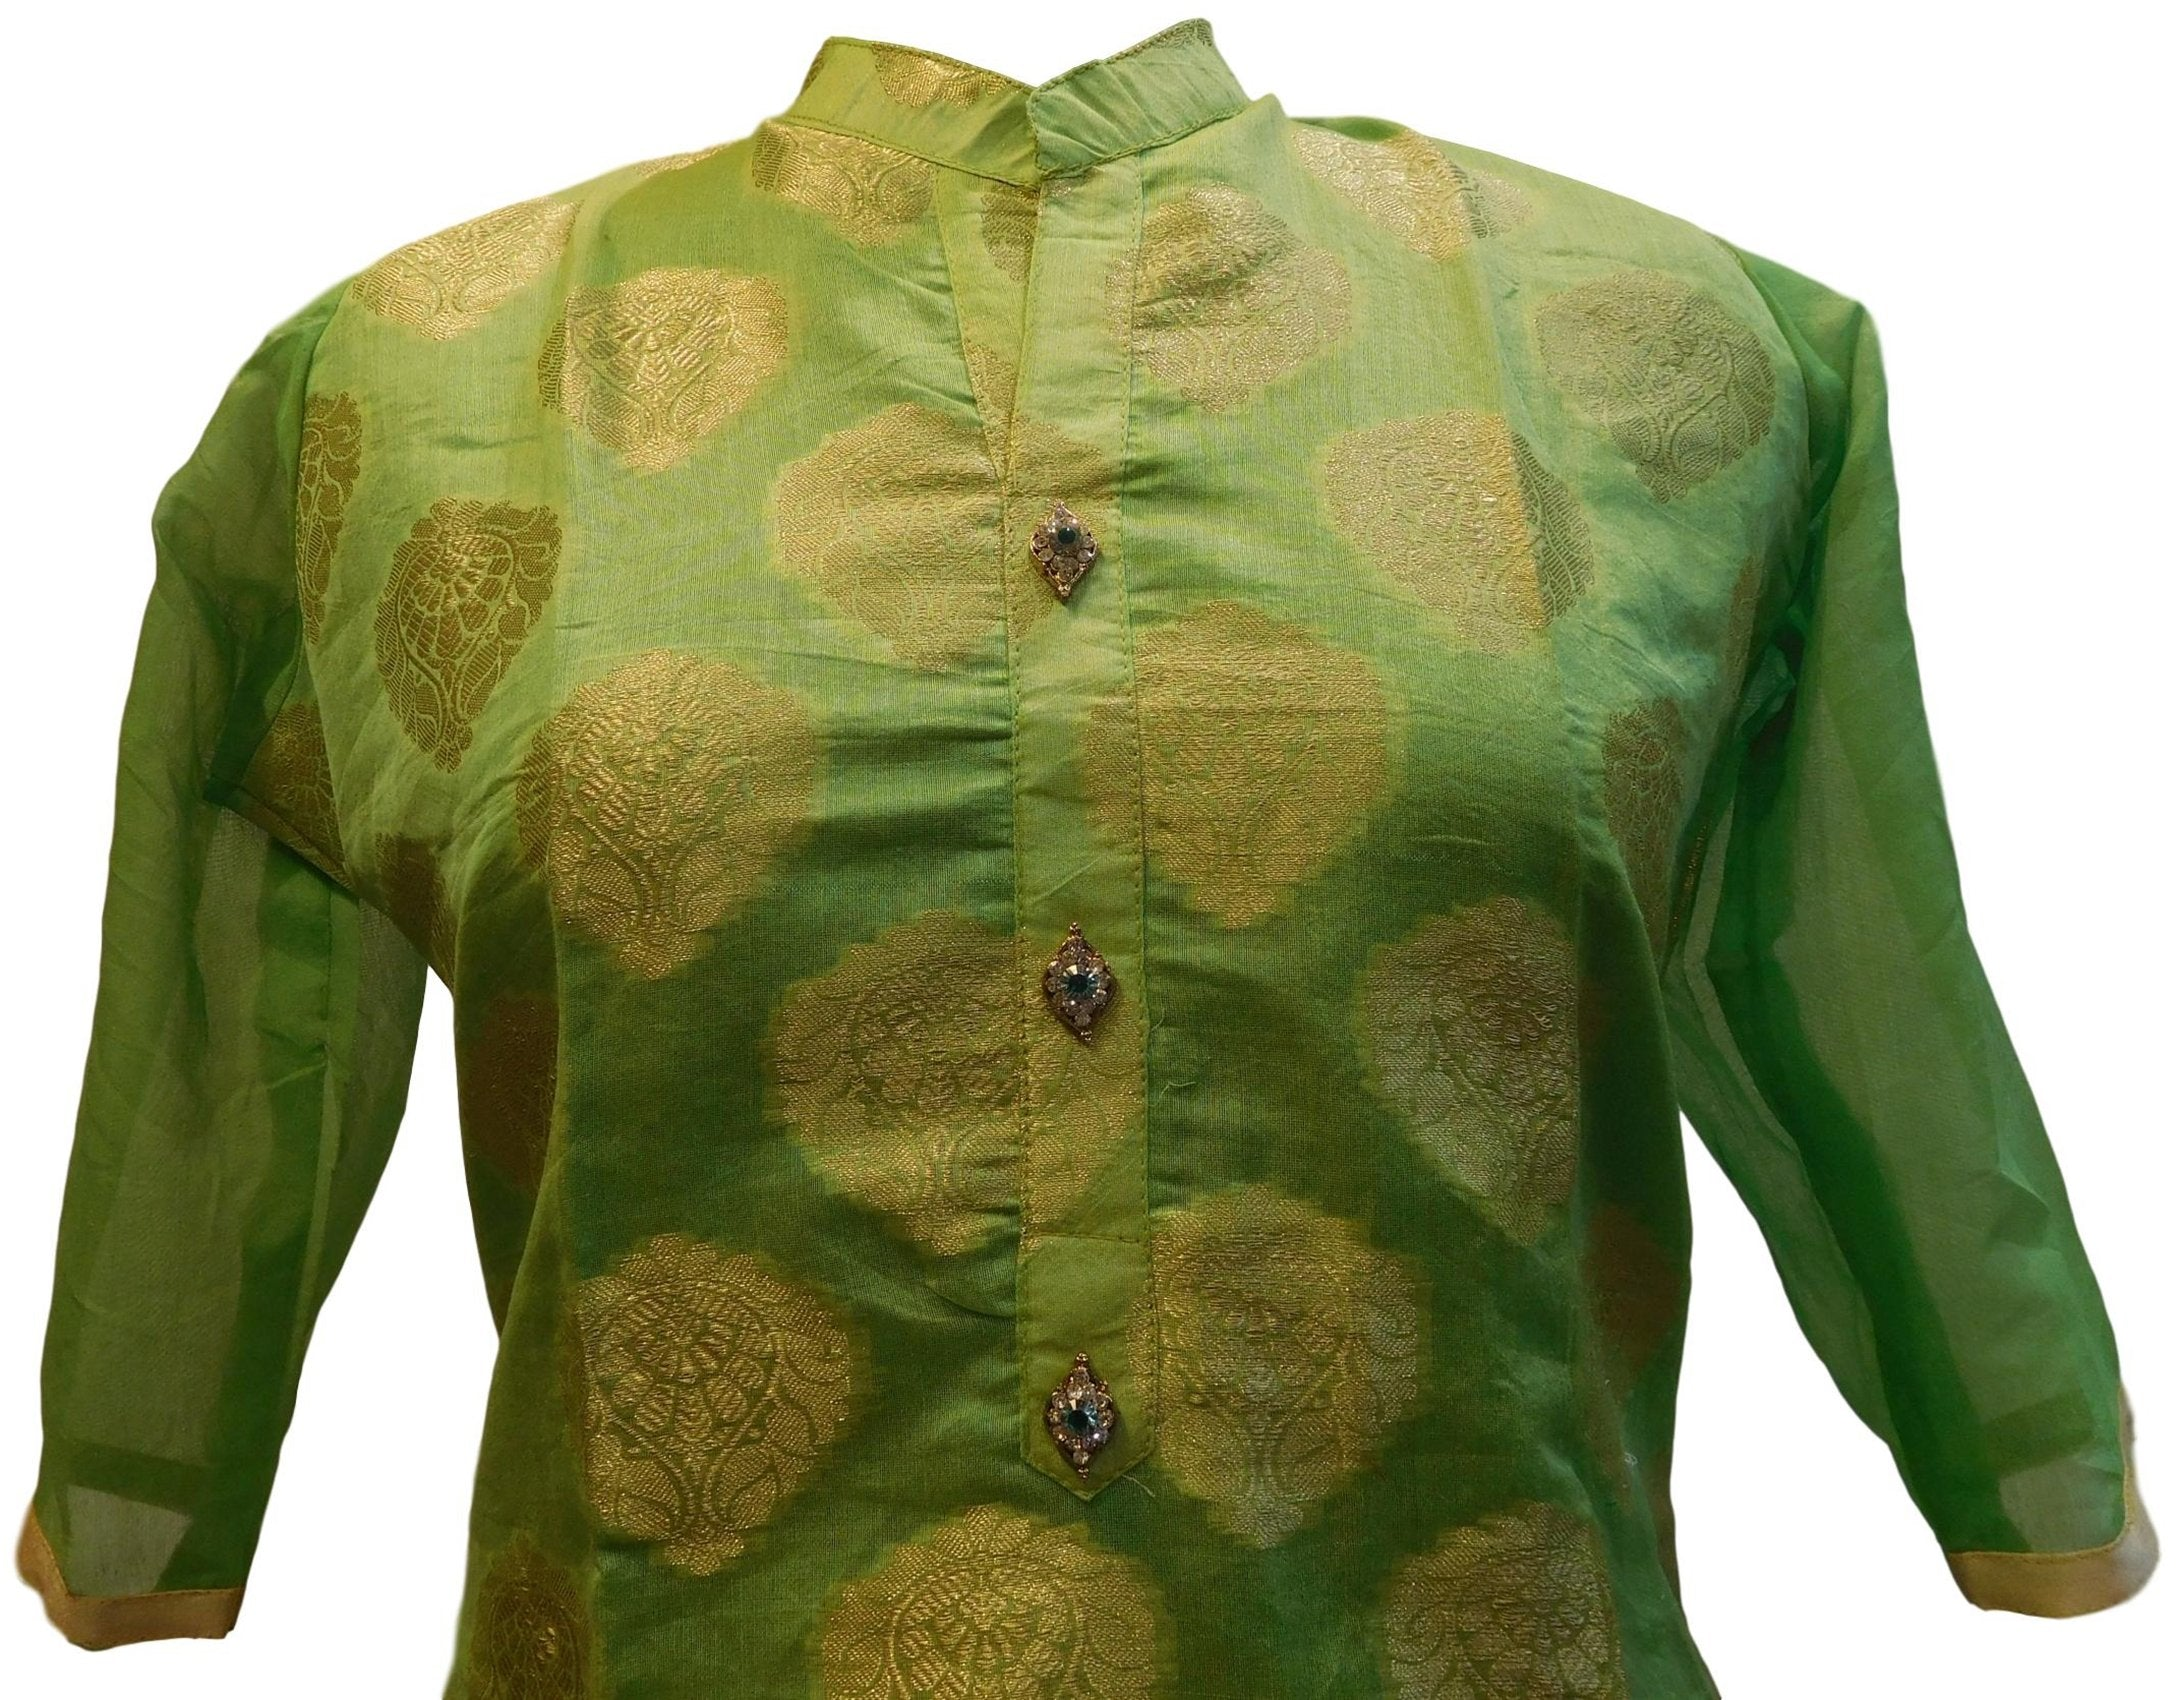 Green Designer Cotton (Chanderi) Self Weaven Zari Hand Embroidery Stone Work Kurti Kurta